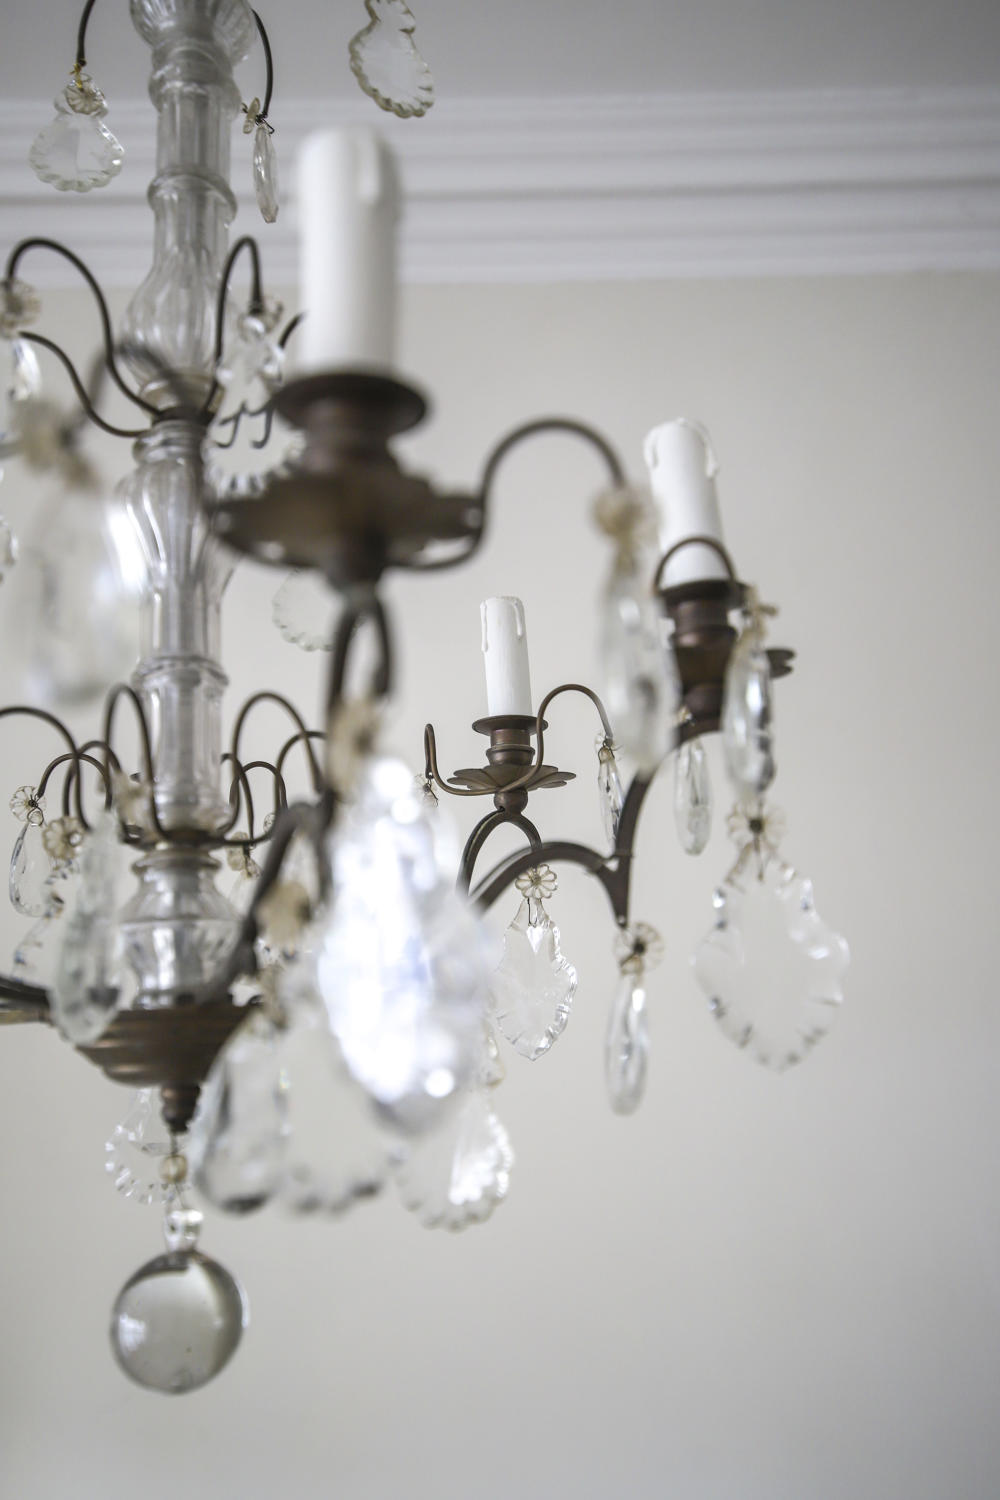 19th century French antique 6 arm chandelier